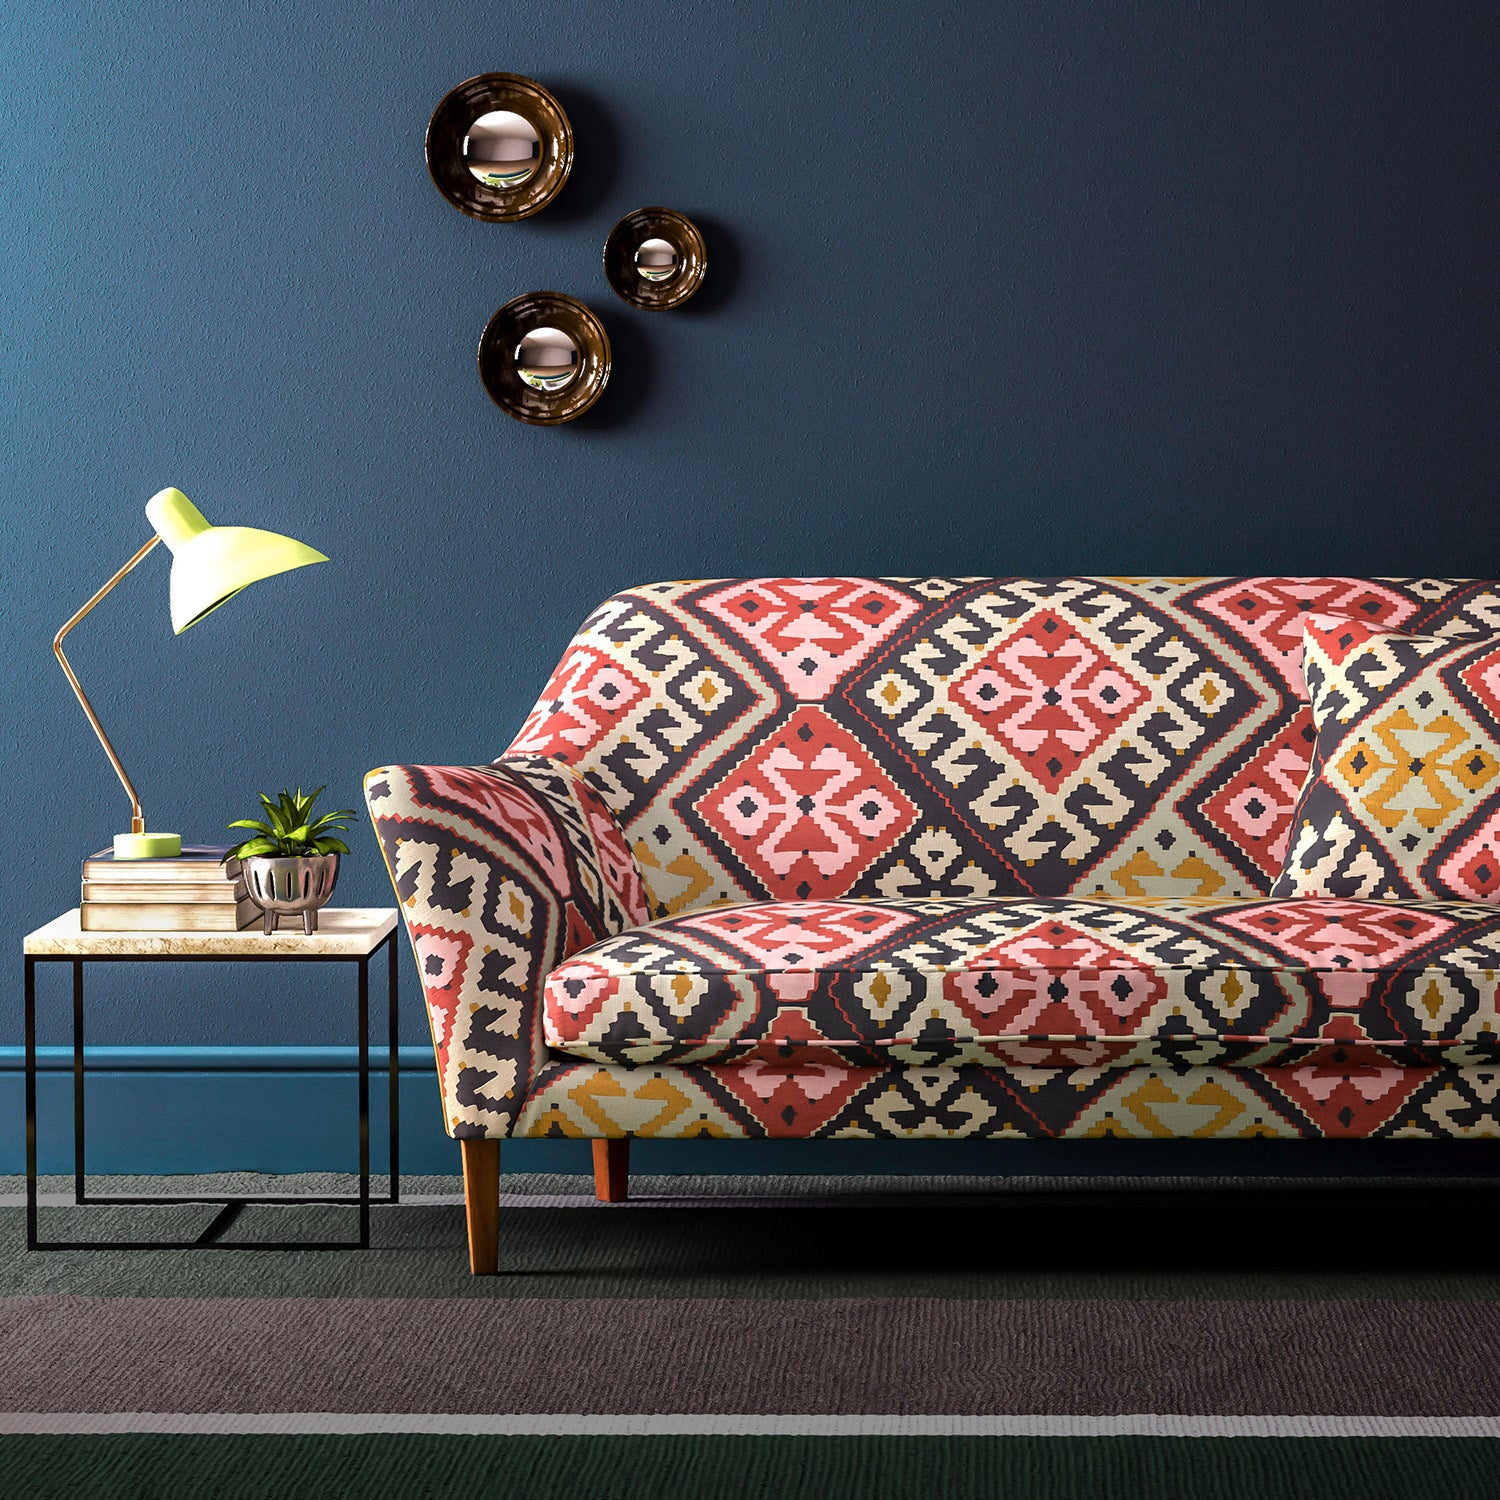 Velvet sofa upholstered in a rustic toned kilim design velvet upholstery fabric with a stain resistant finish